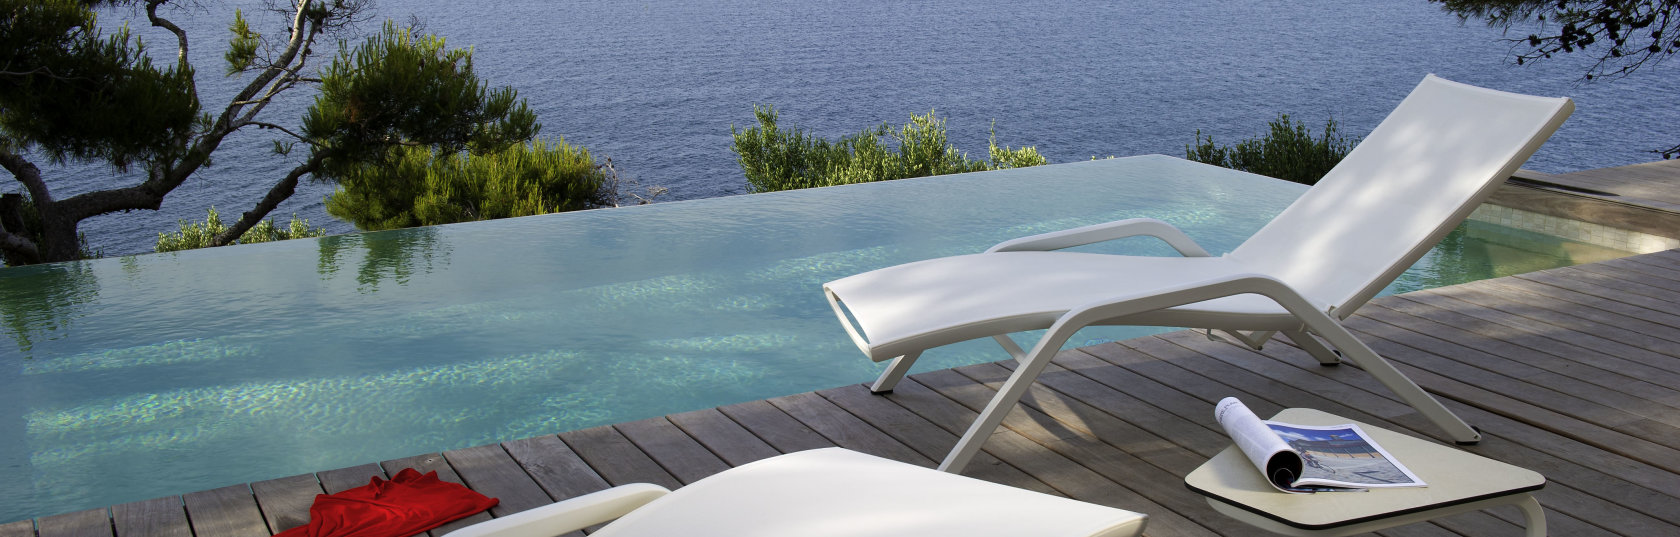 How to choose the best sun lounger for your space